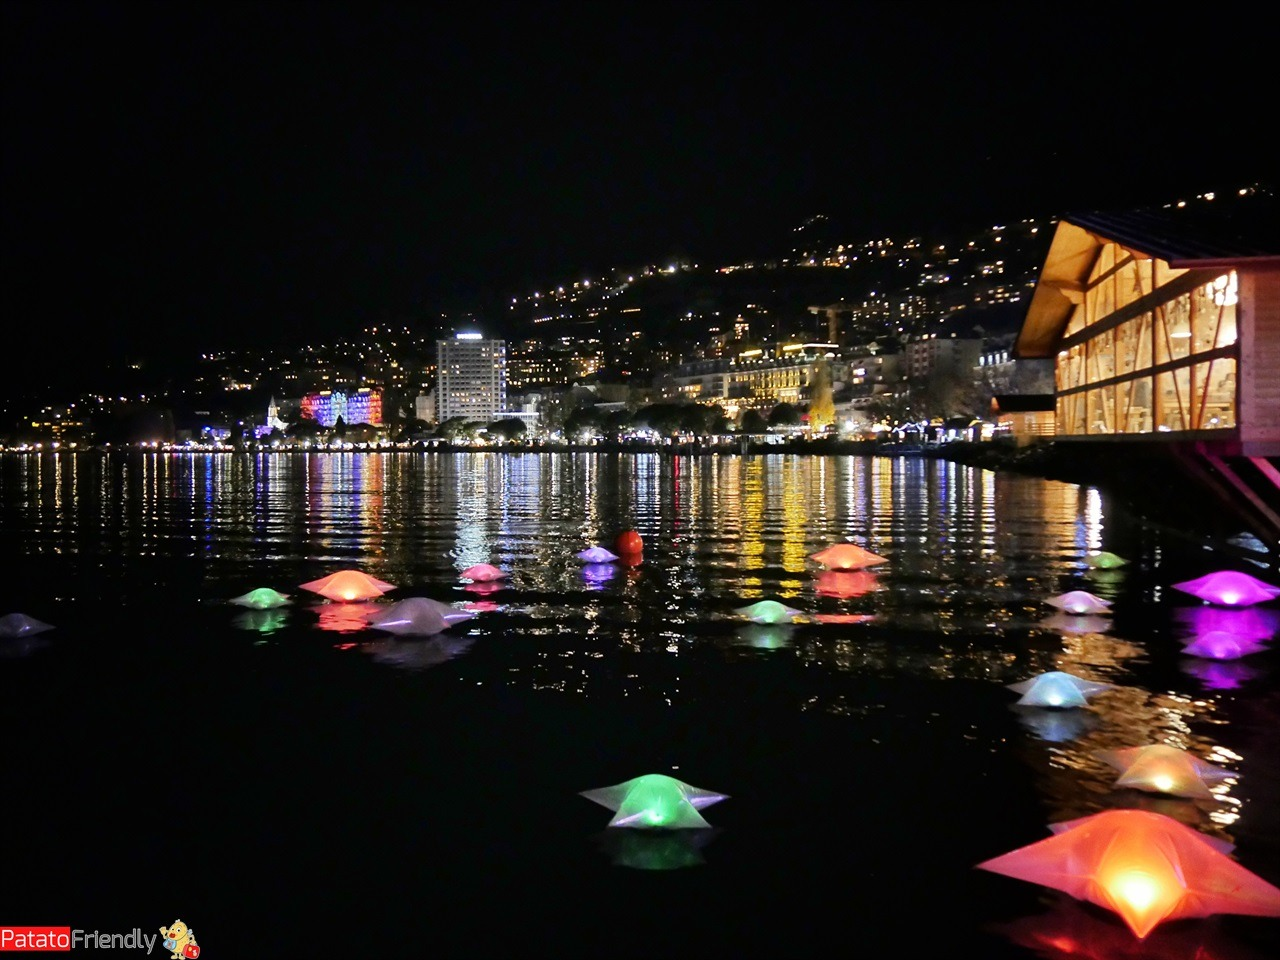 [cml_media_alt id='12974']Natale a Montreux coi bambini - Montreux by night[/cml_media_alt]